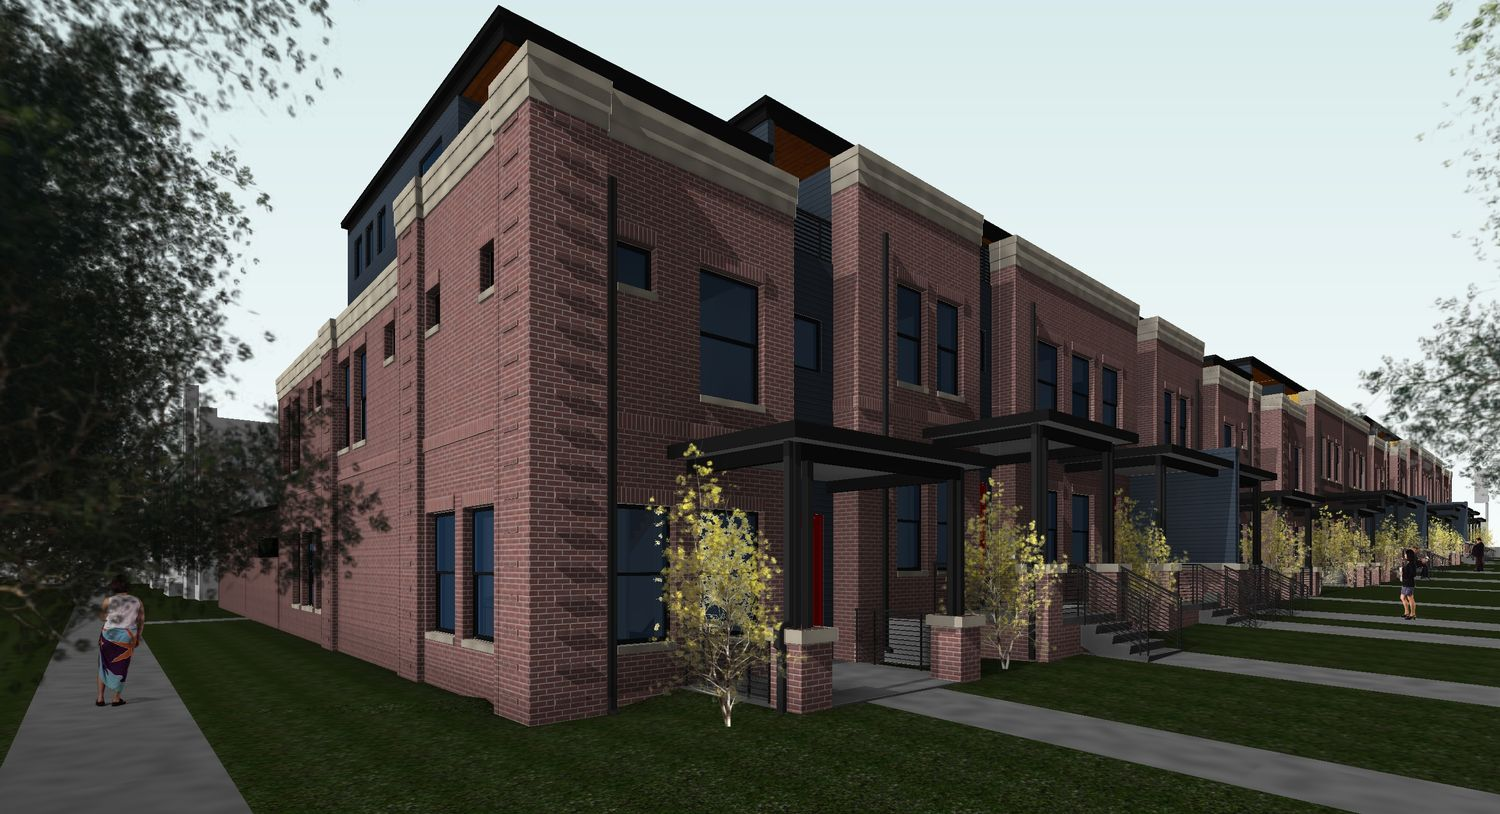 Single Family for Active at Vine - Plan C 1396 Vine Street Denver, Colorado 80206 United States